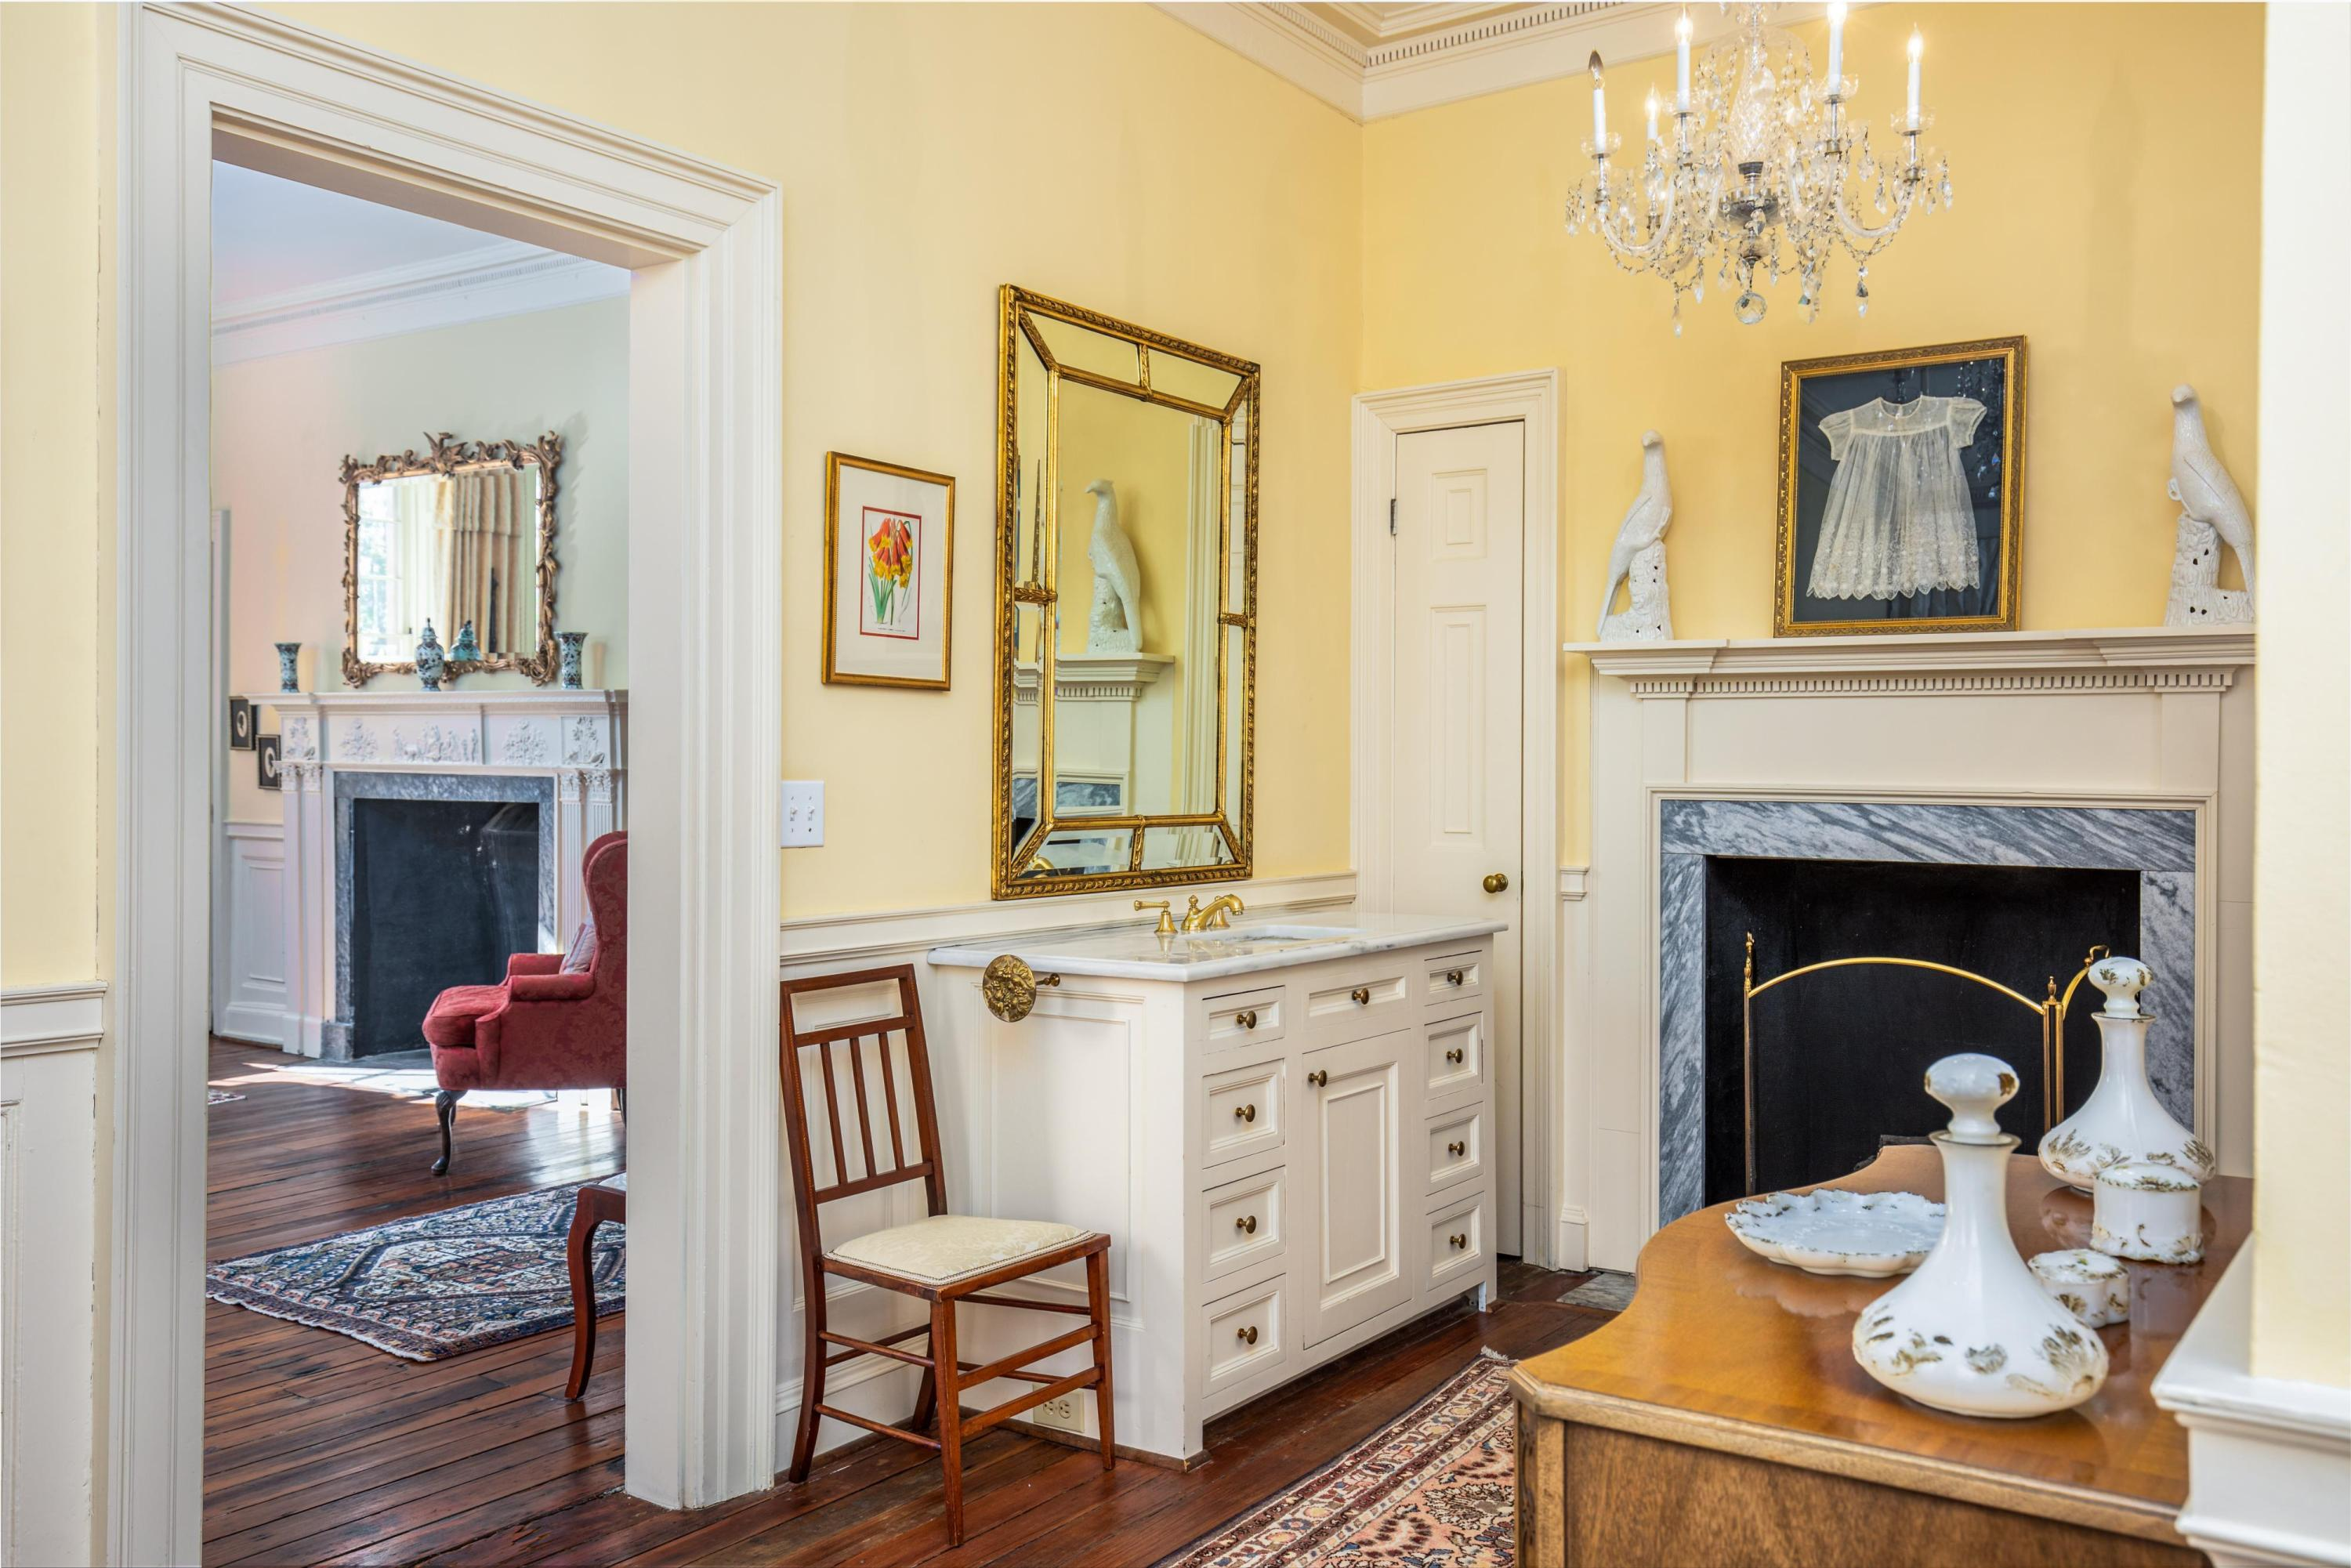 South of Broad Homes For Sale - 69 Church, Charleston, SC - 72